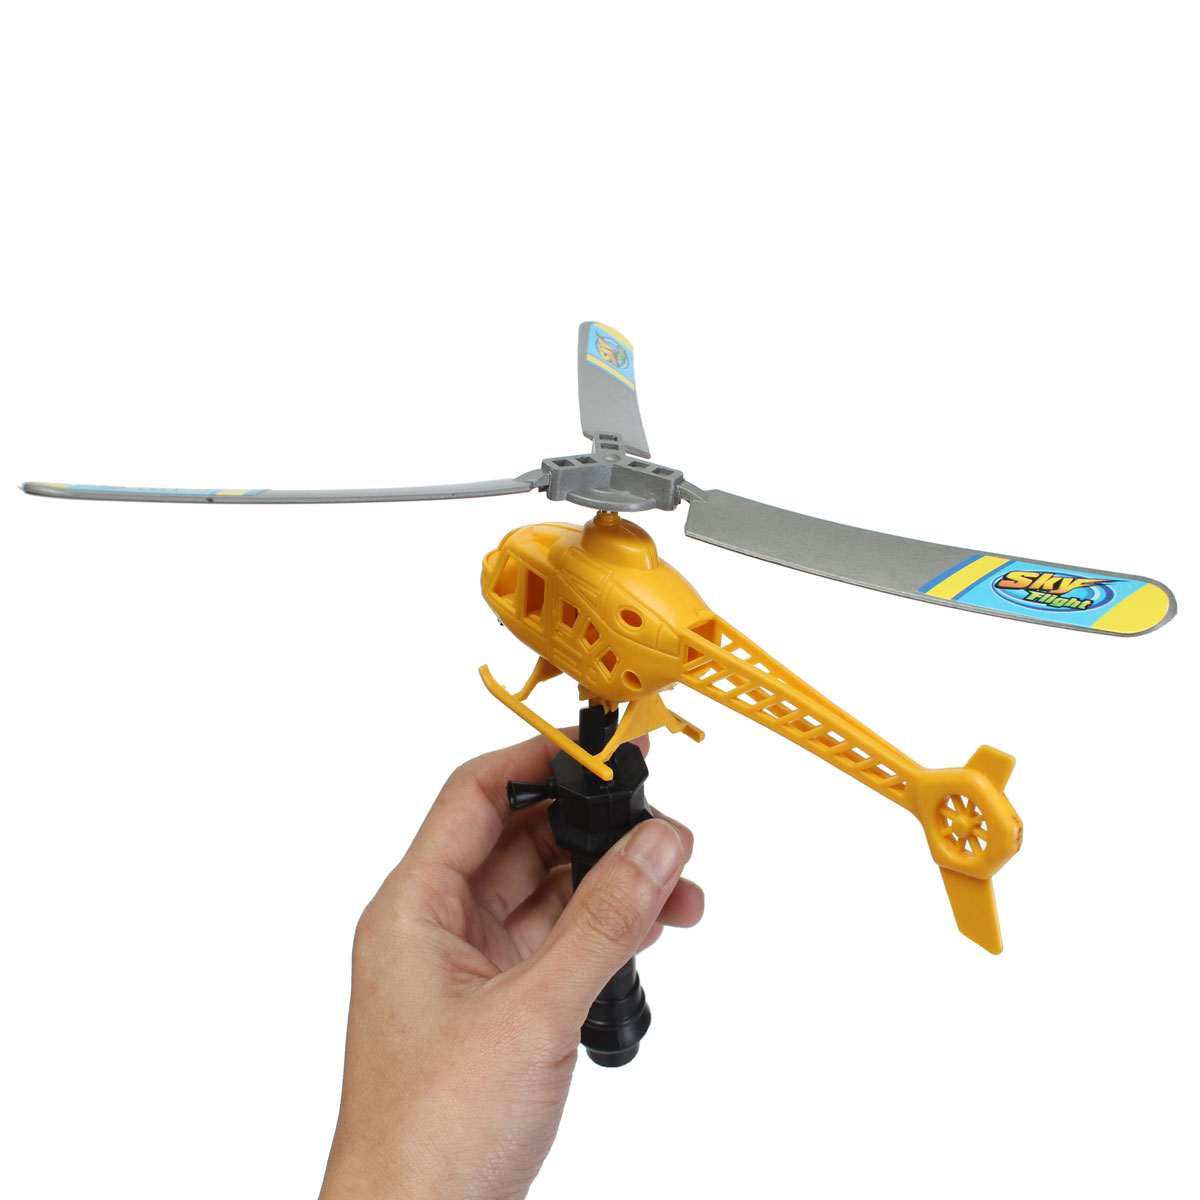 propel toy helicopter with Ripcord Powered Launch Pull Launcher Action Helicopter Kids Flying Toy on WLtoys V944 4ch Helicopter Aircraft Spare 1552642680 also Esky 150 Mini Flybarless 4ch 2 4ghz 3 Akse Rc Fjernstyret Helikopter Mode 2 Html besides Outdoor Quadcopter Rc Helicopter Smart Drone 60267171744 together with 150982233894 likewise Ripcord Powered Launch Pull launcher Action Helicopter Kids Flying Toy.